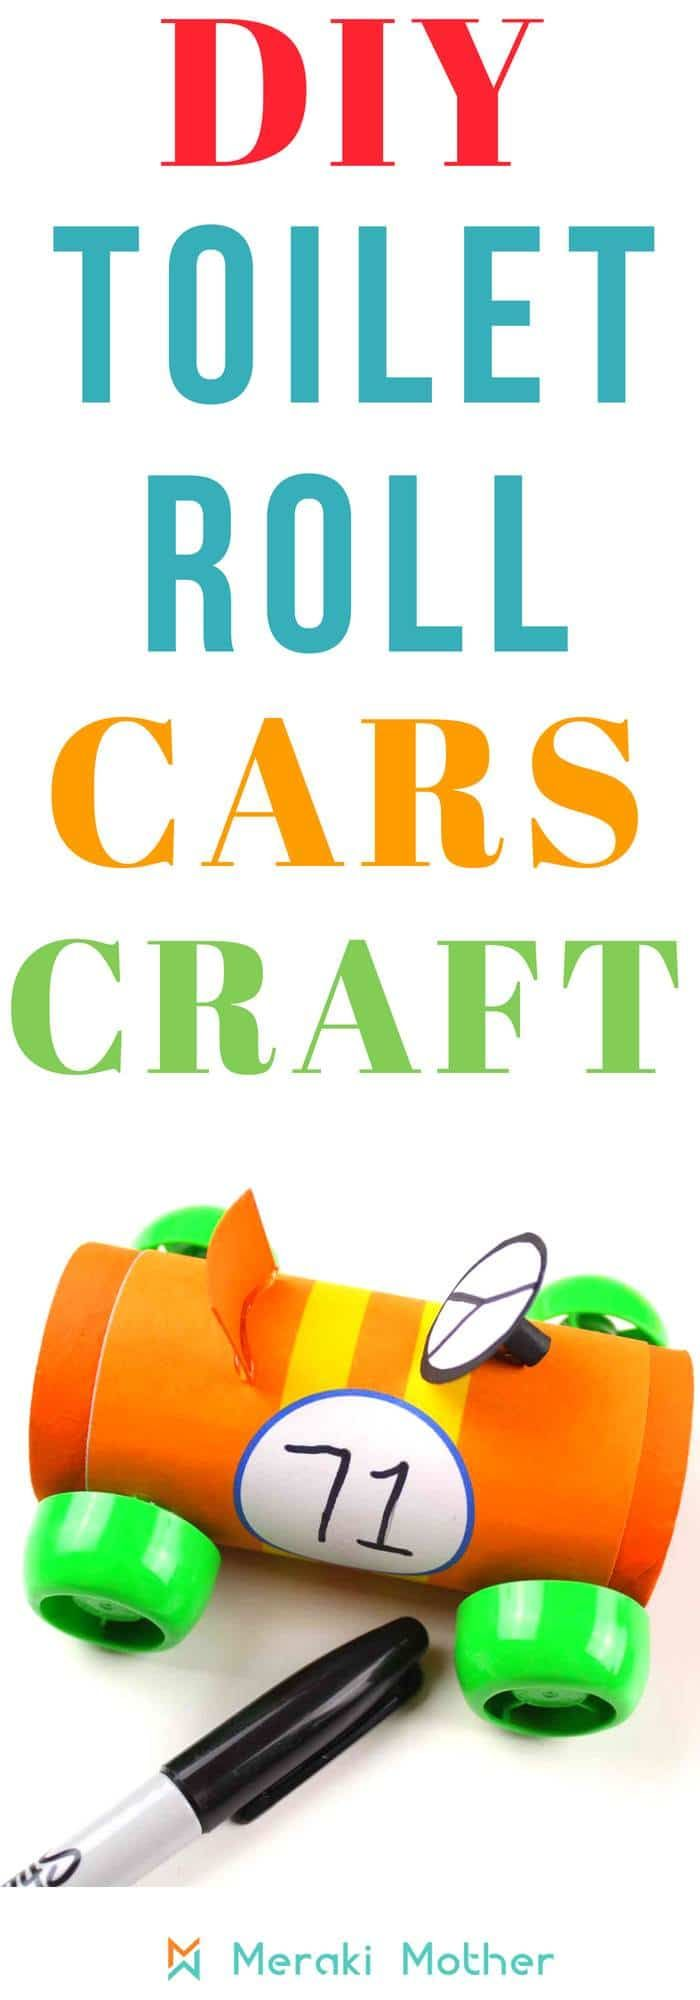 Racing Car Craft For Kids Crafts For Kids Pinterest Crafts For